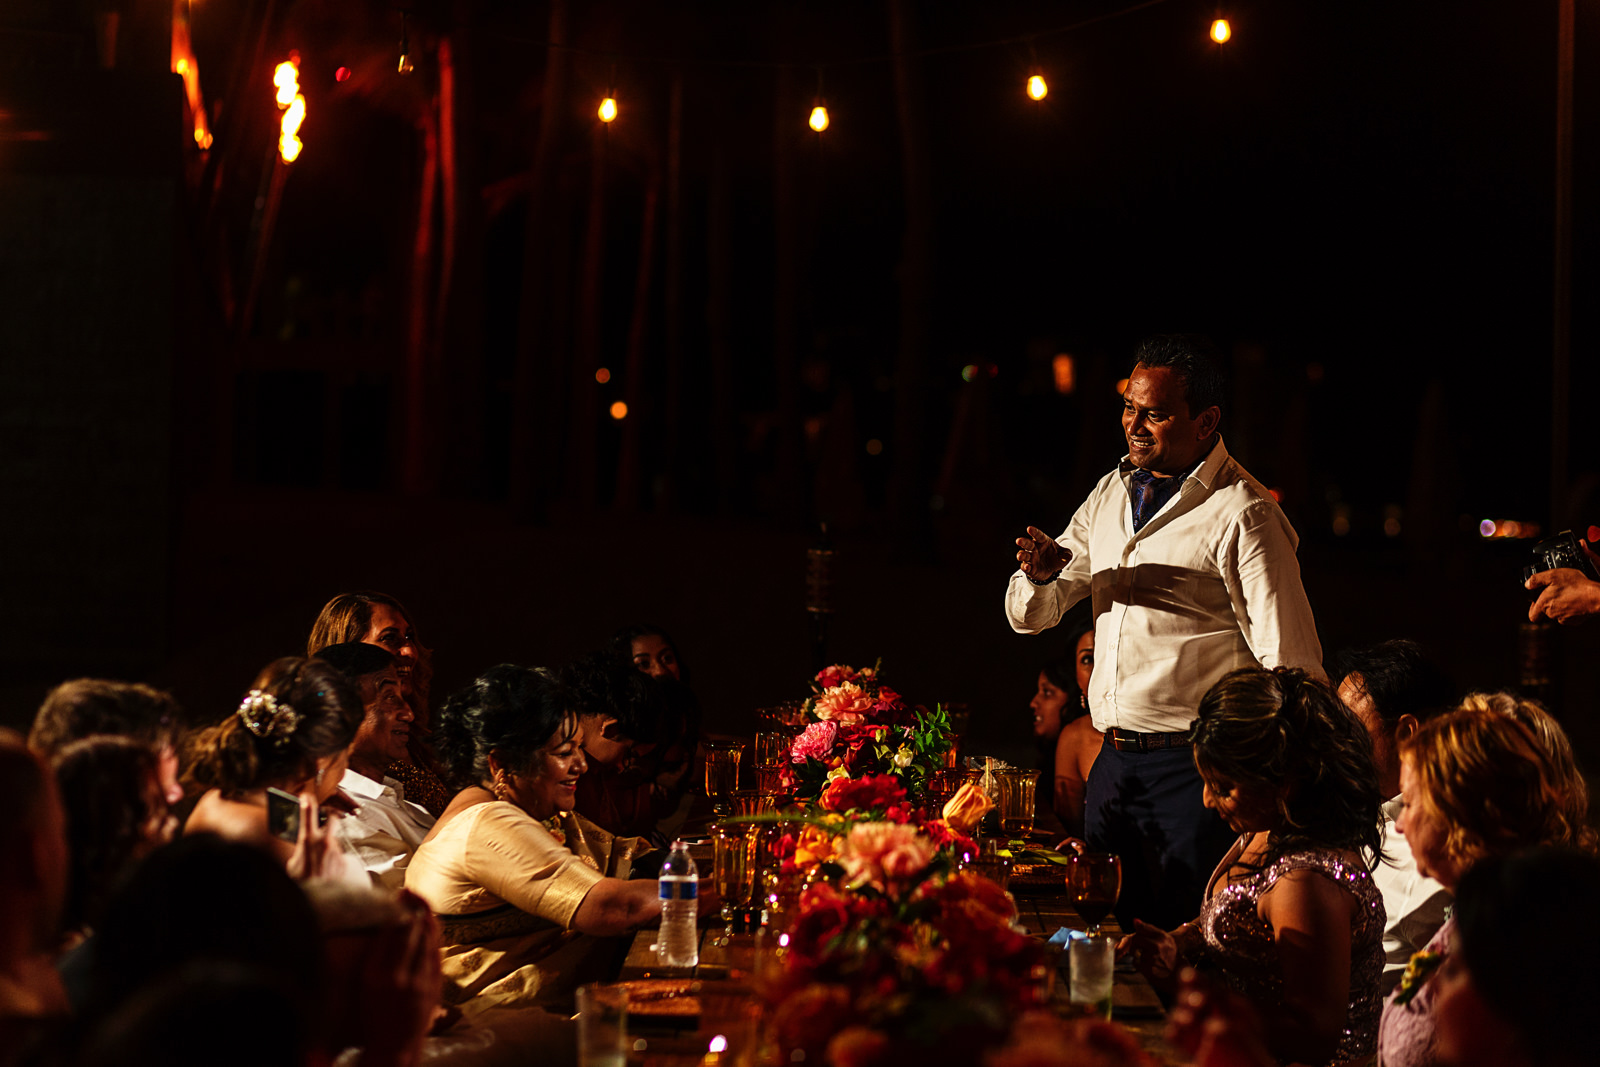 A wedding guest is giving a speech standing during dinner at the table